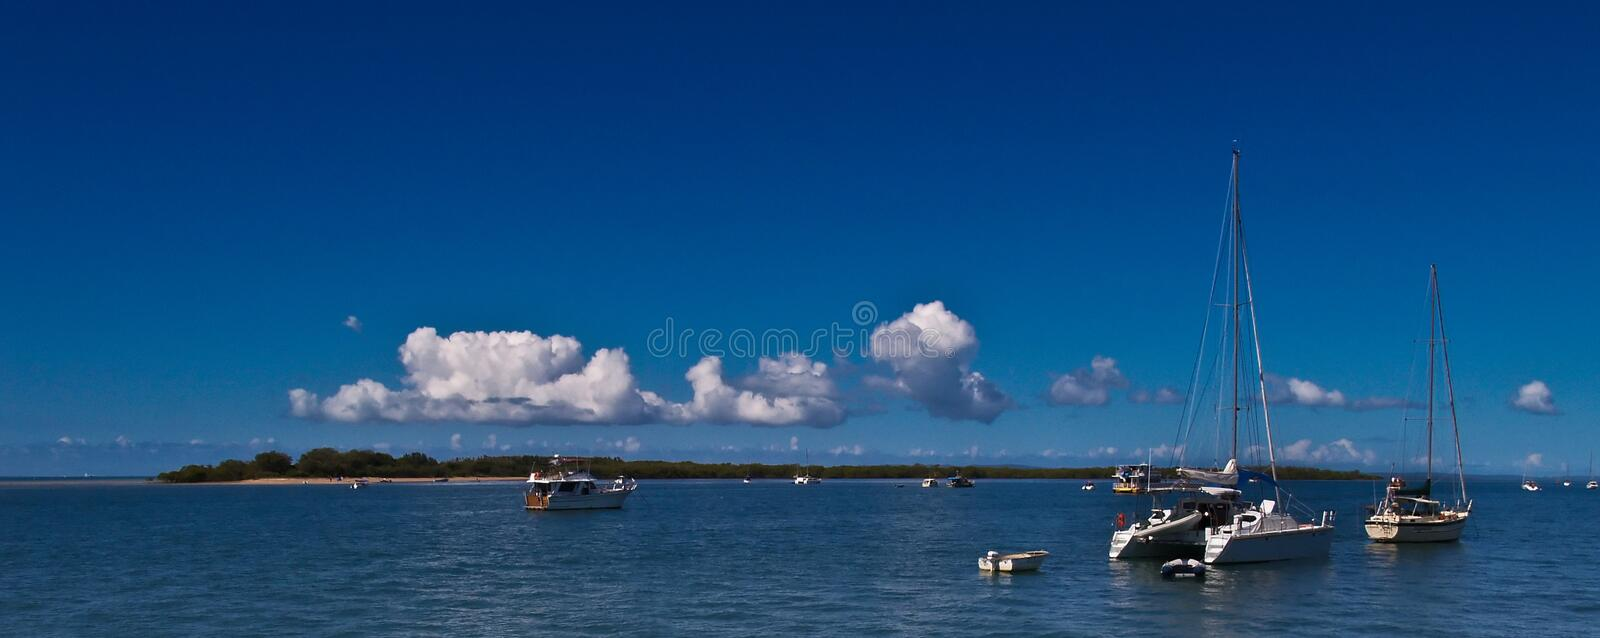 Moored boats around island royalty free stock images